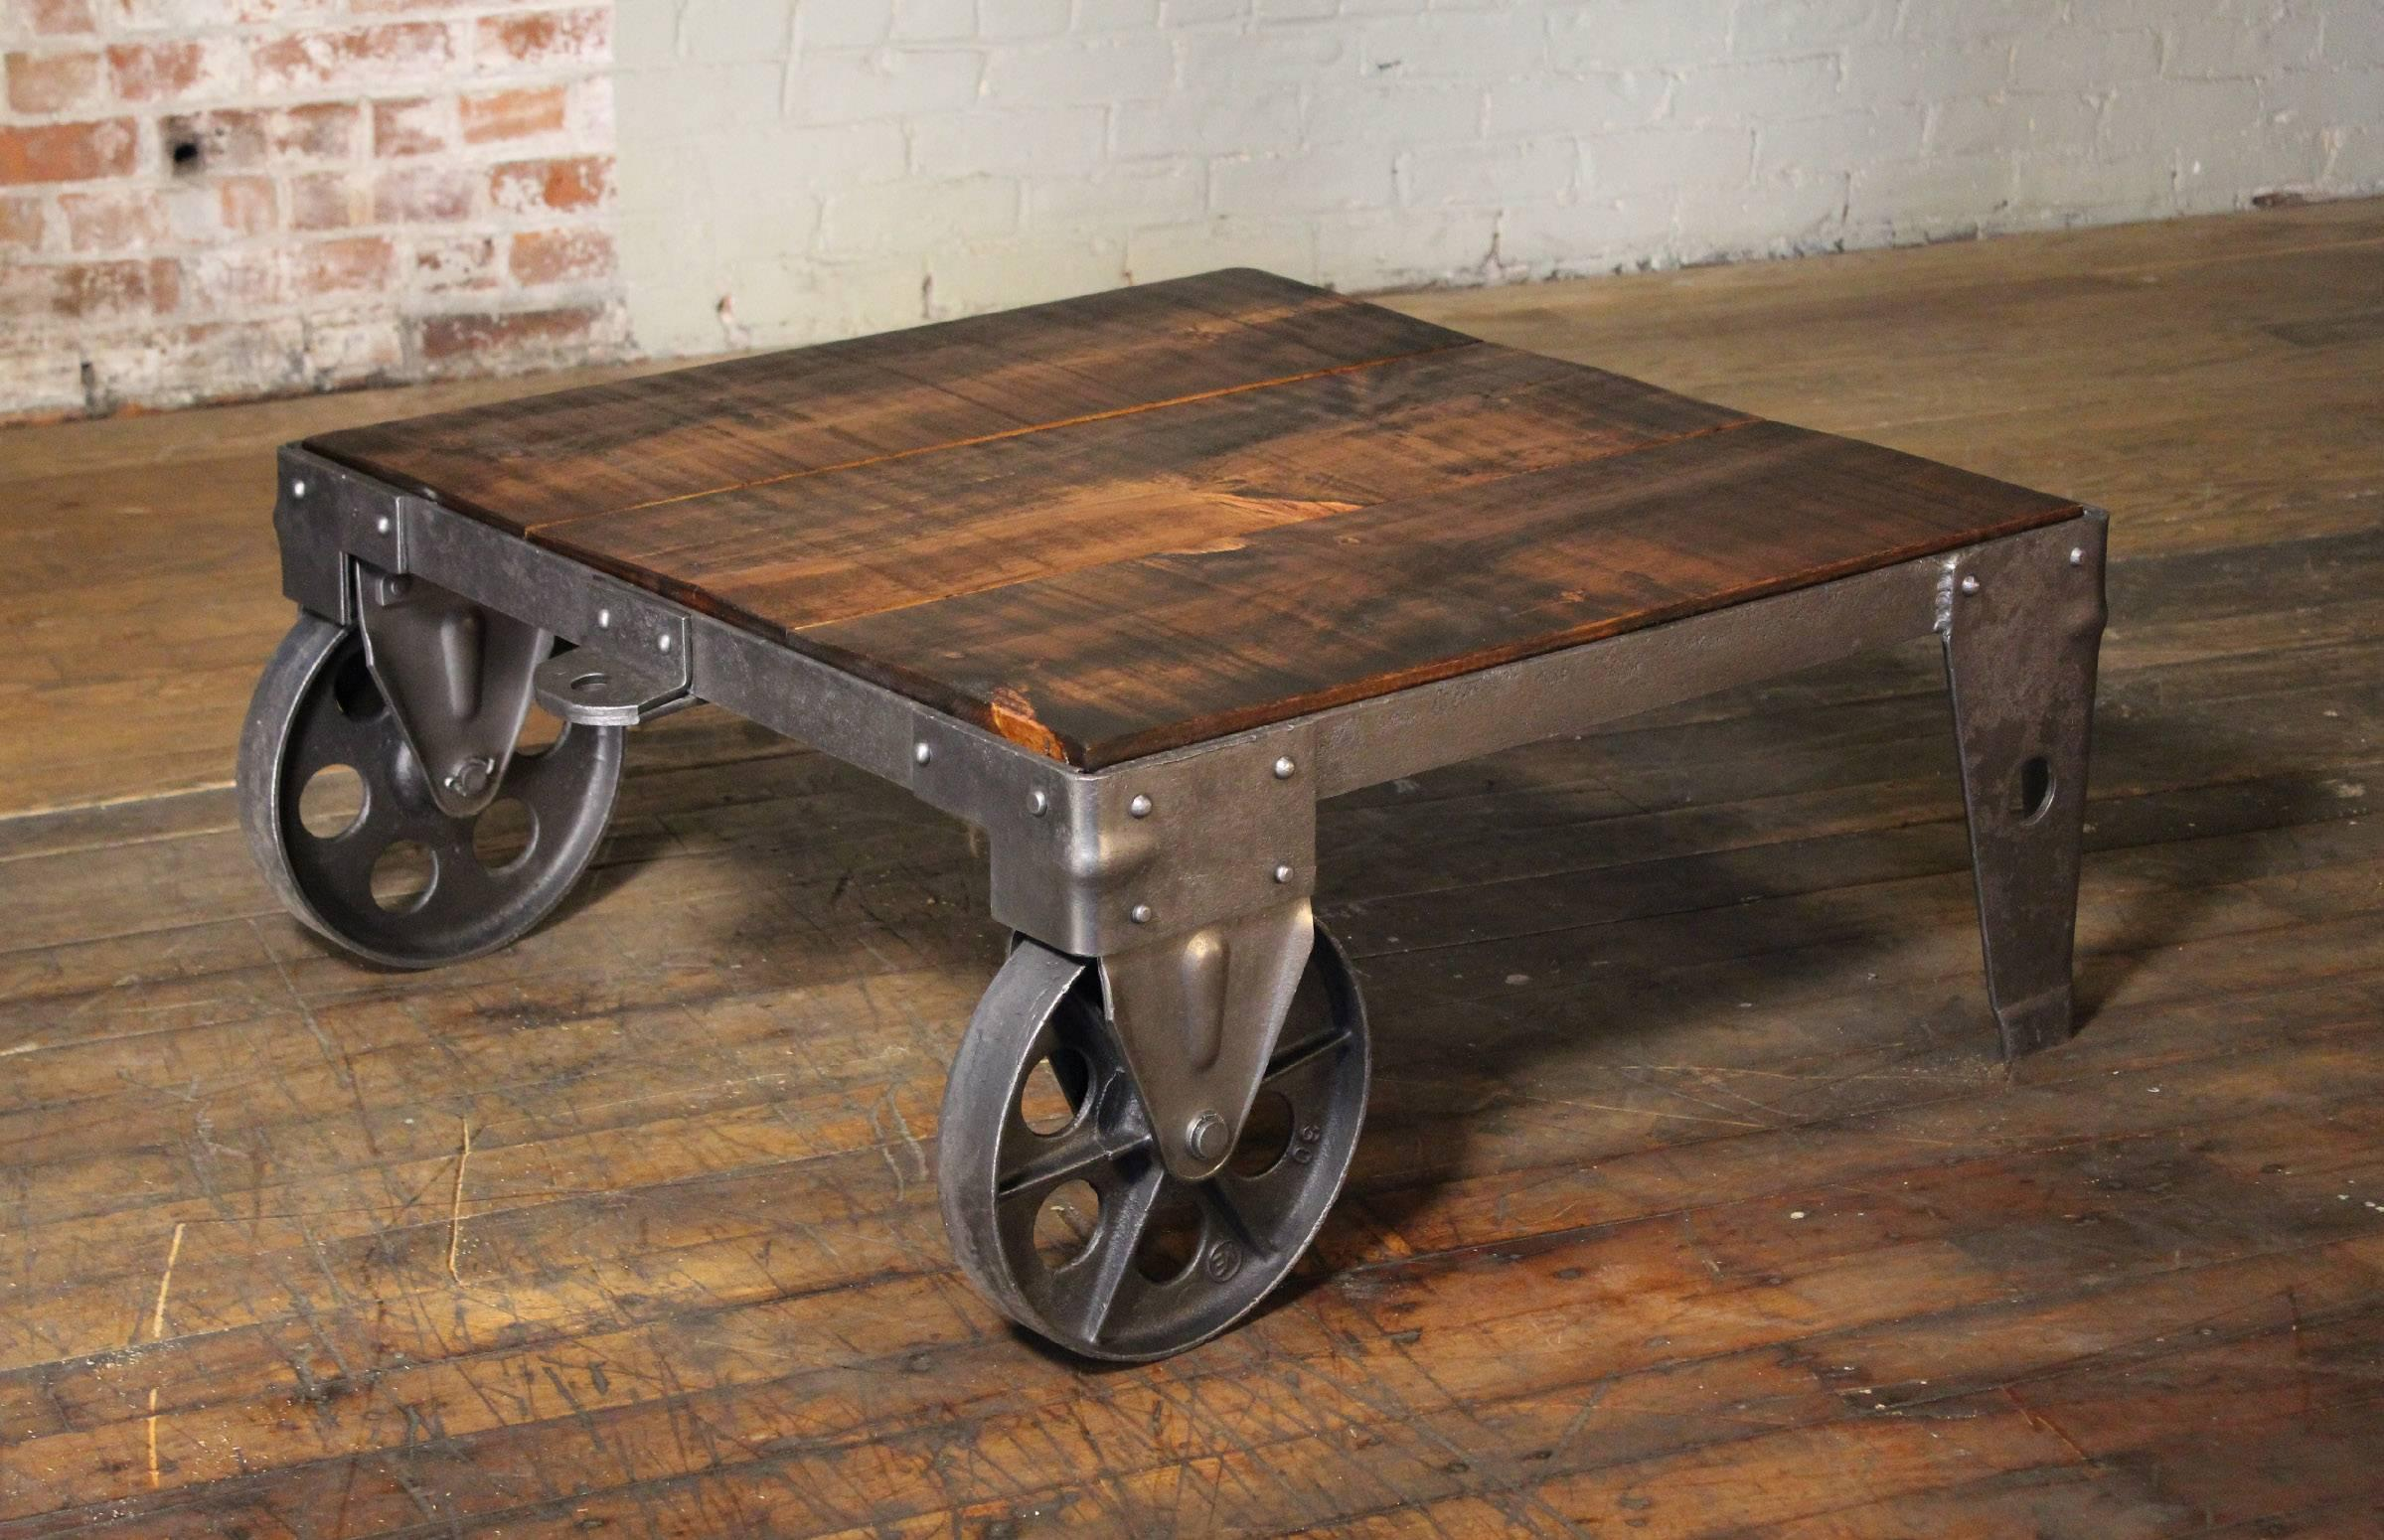 Gentil Authentic Vintage Industrial Cart Coffee Table Factory Shop Wood Steel And  Iron